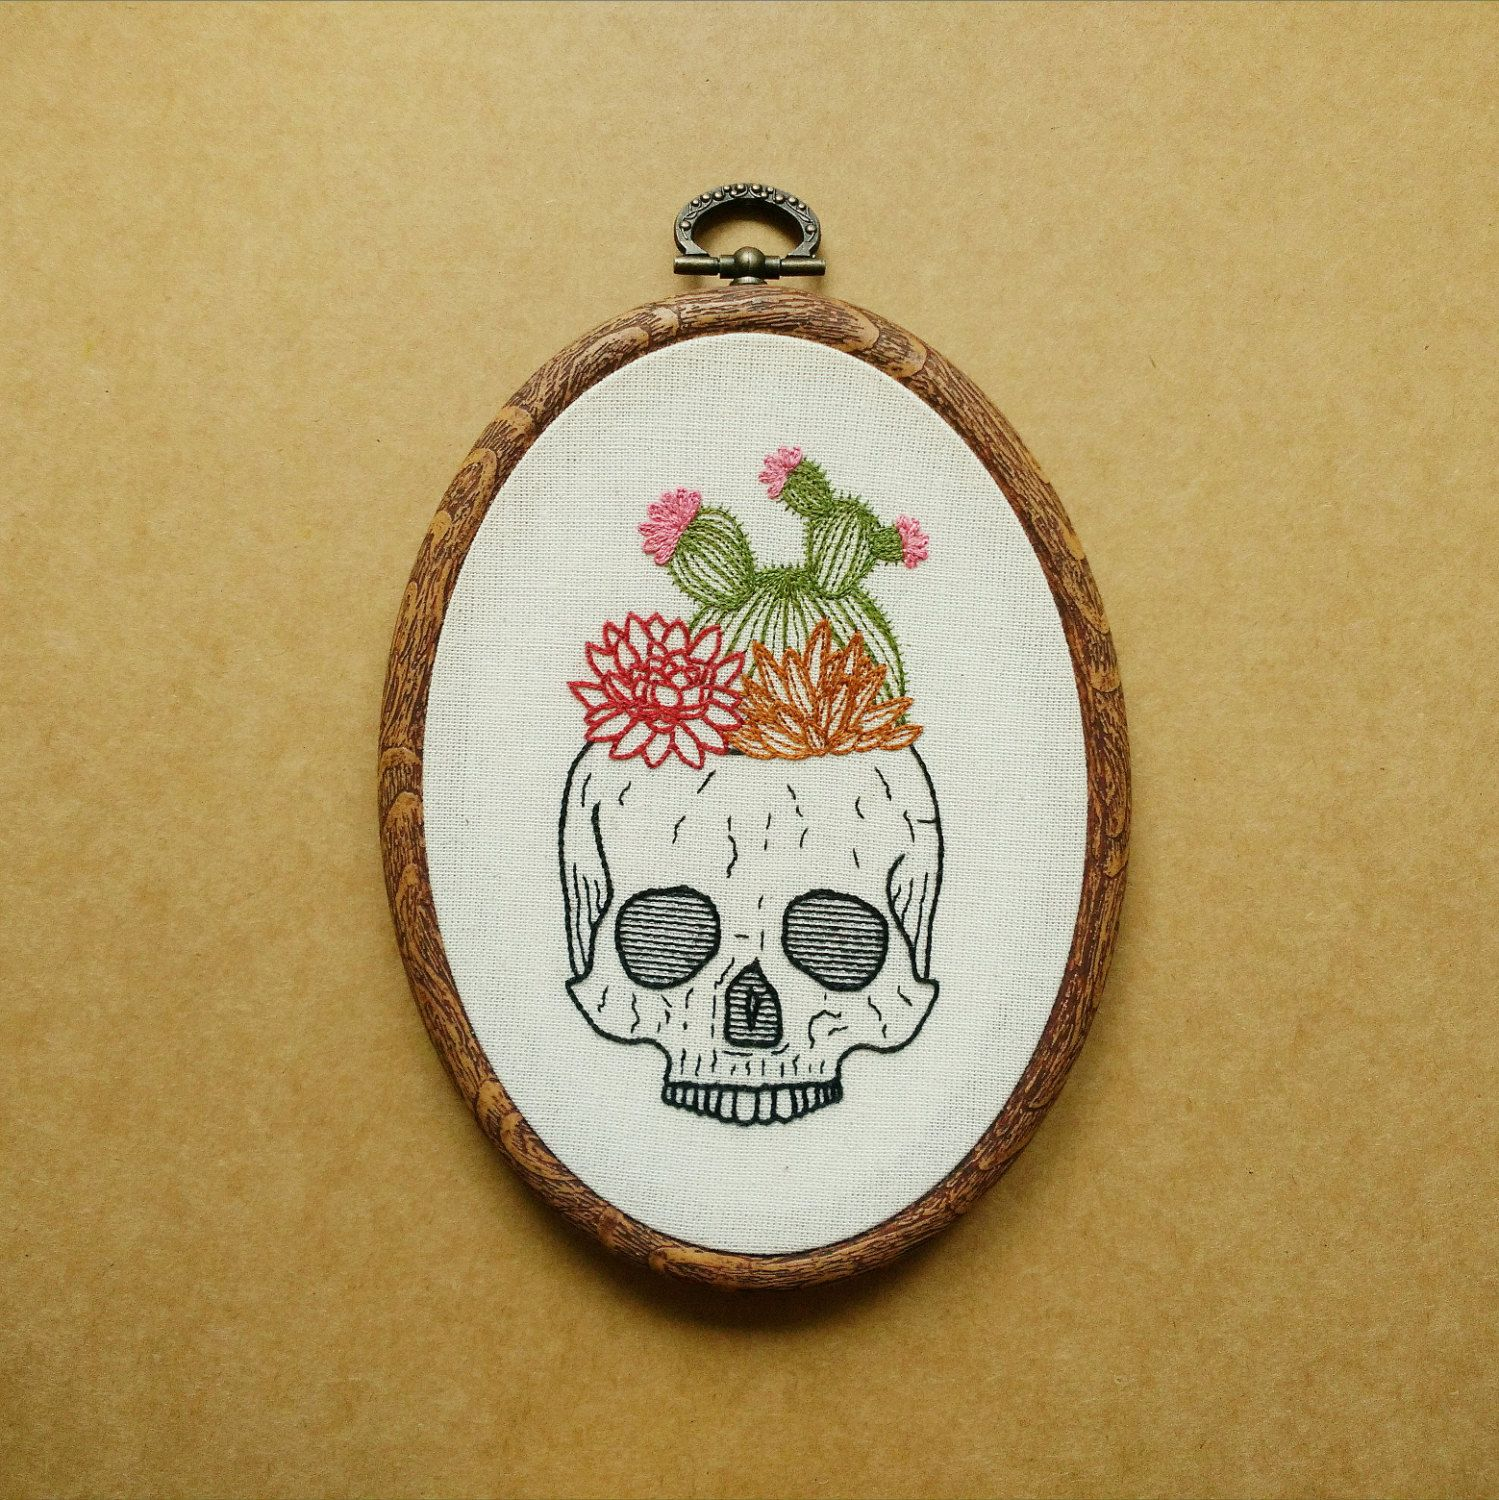 Cactus And Succulent Skull Planter Pot Hand Embroidery Hoop Art